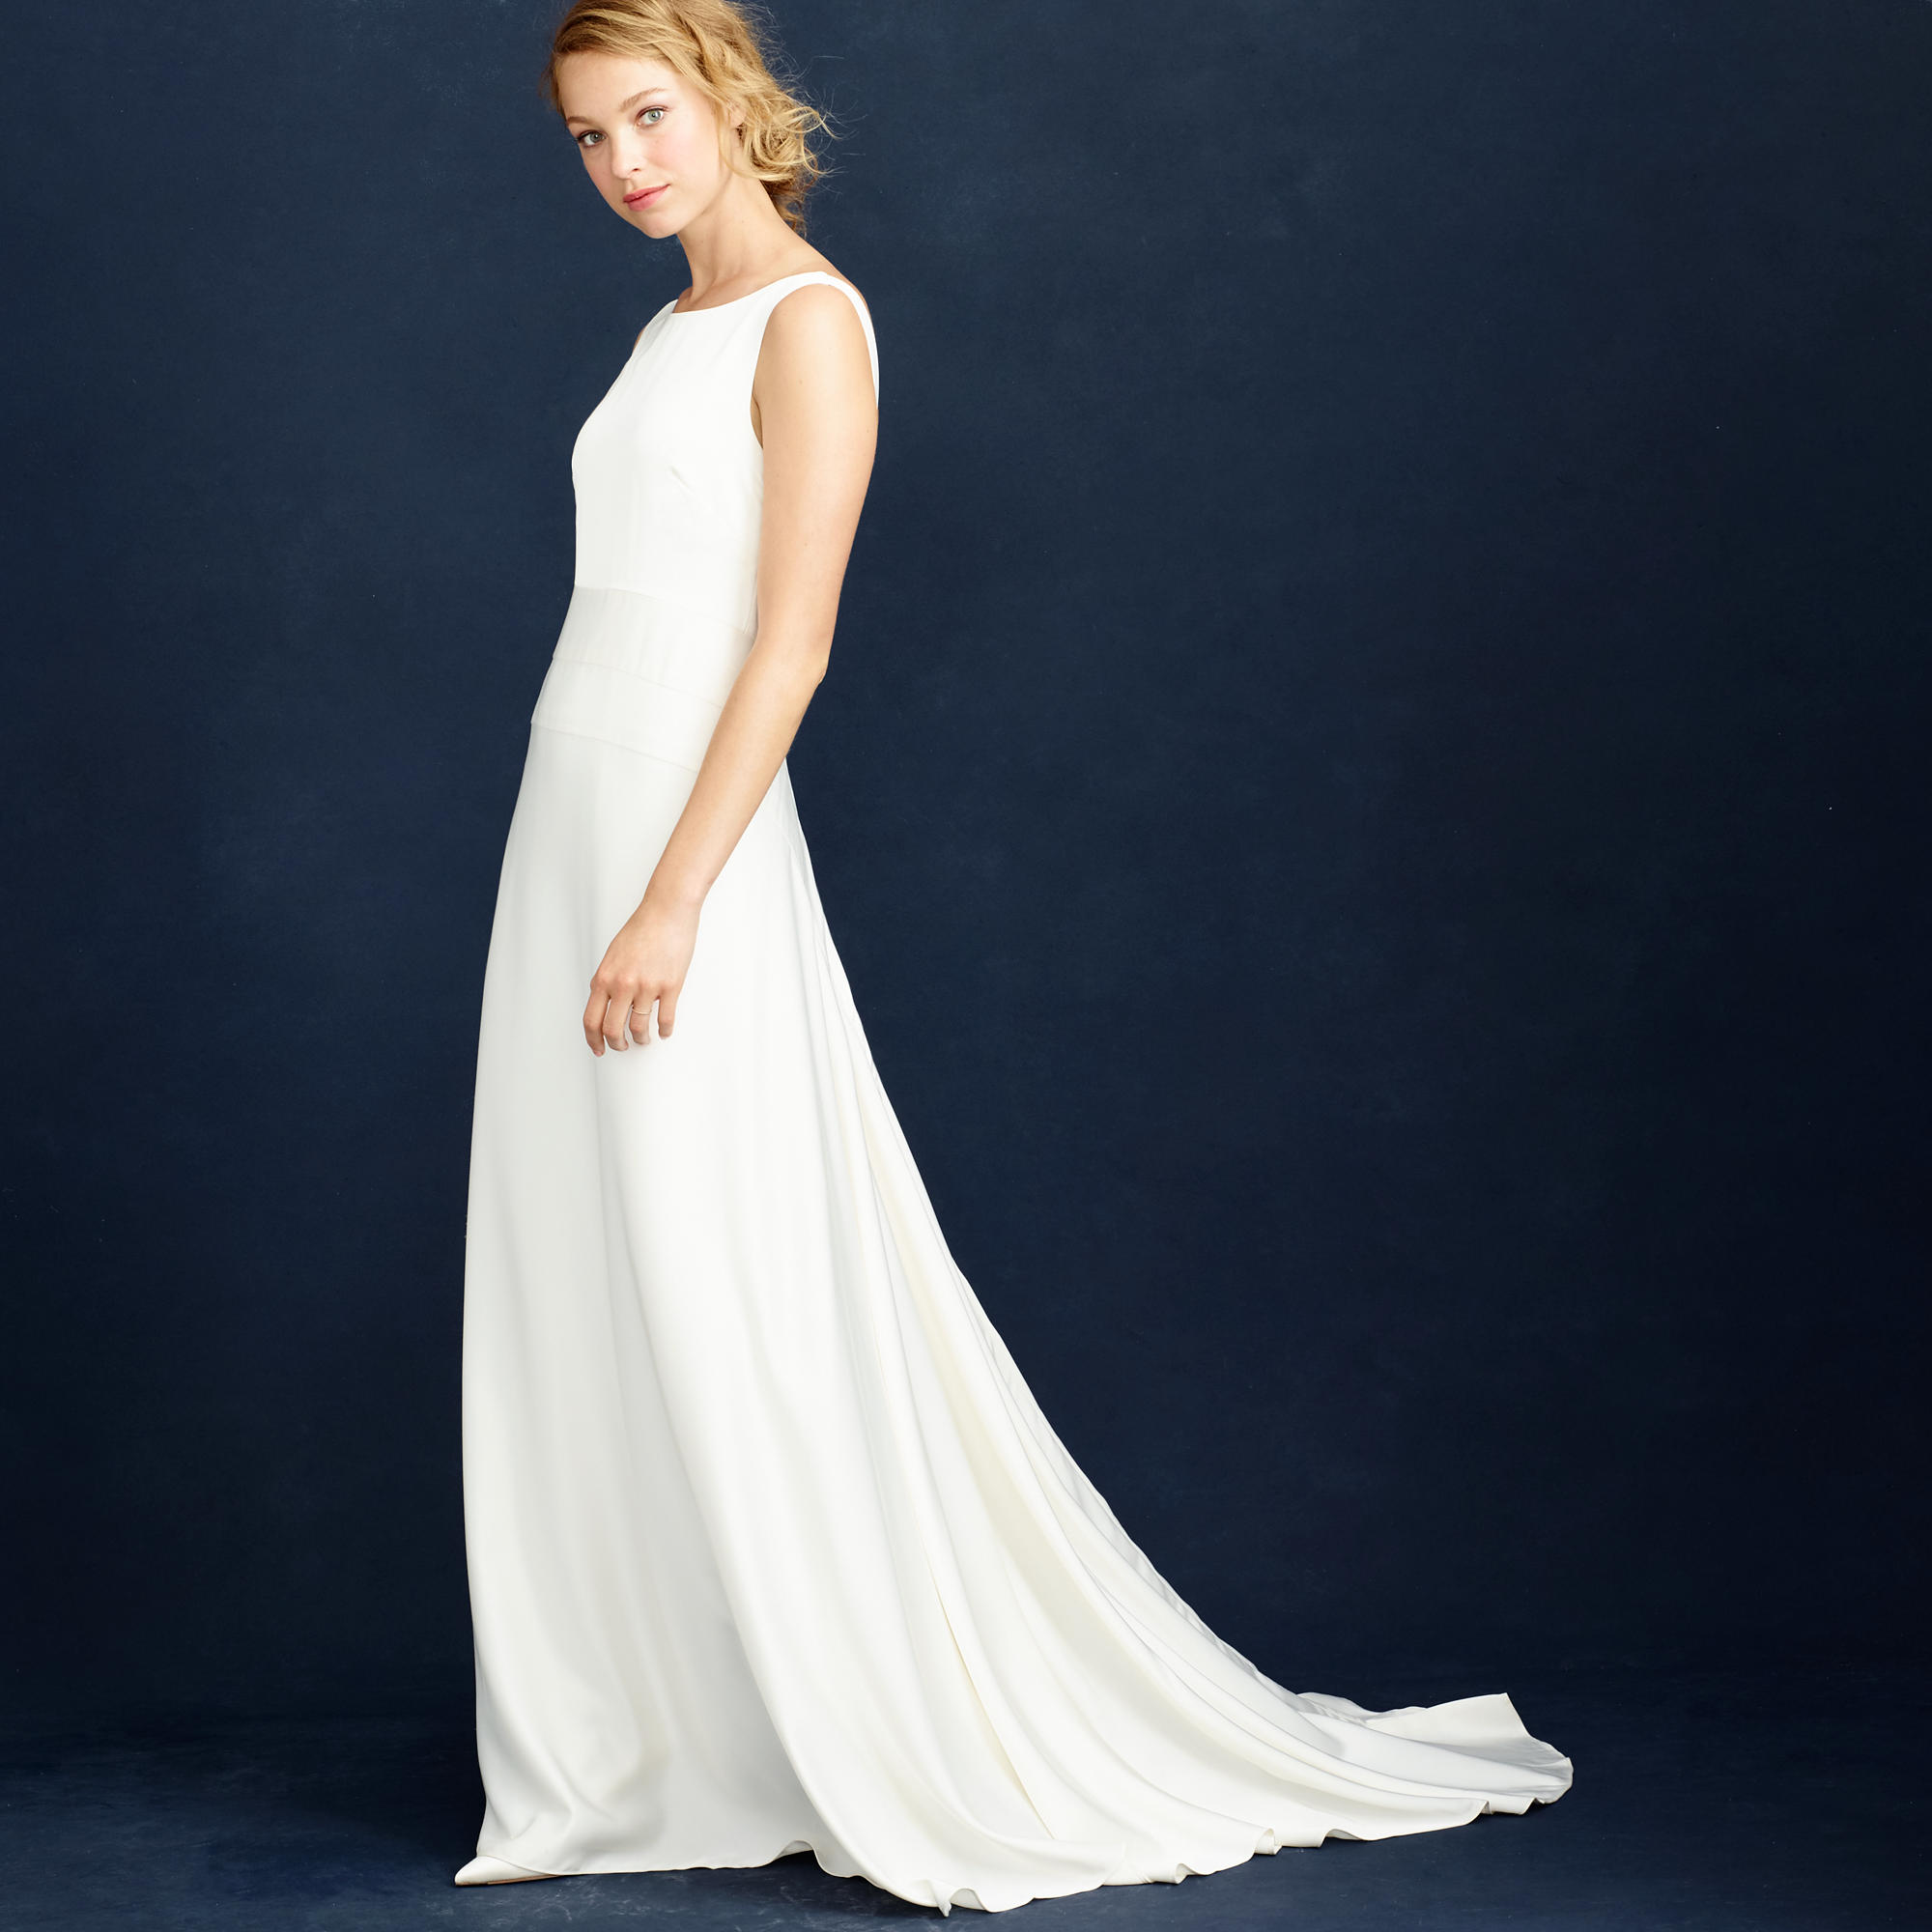 J Crew Wedding Dresses Canada - Wedding Dresses Thumbmediagroup.Com